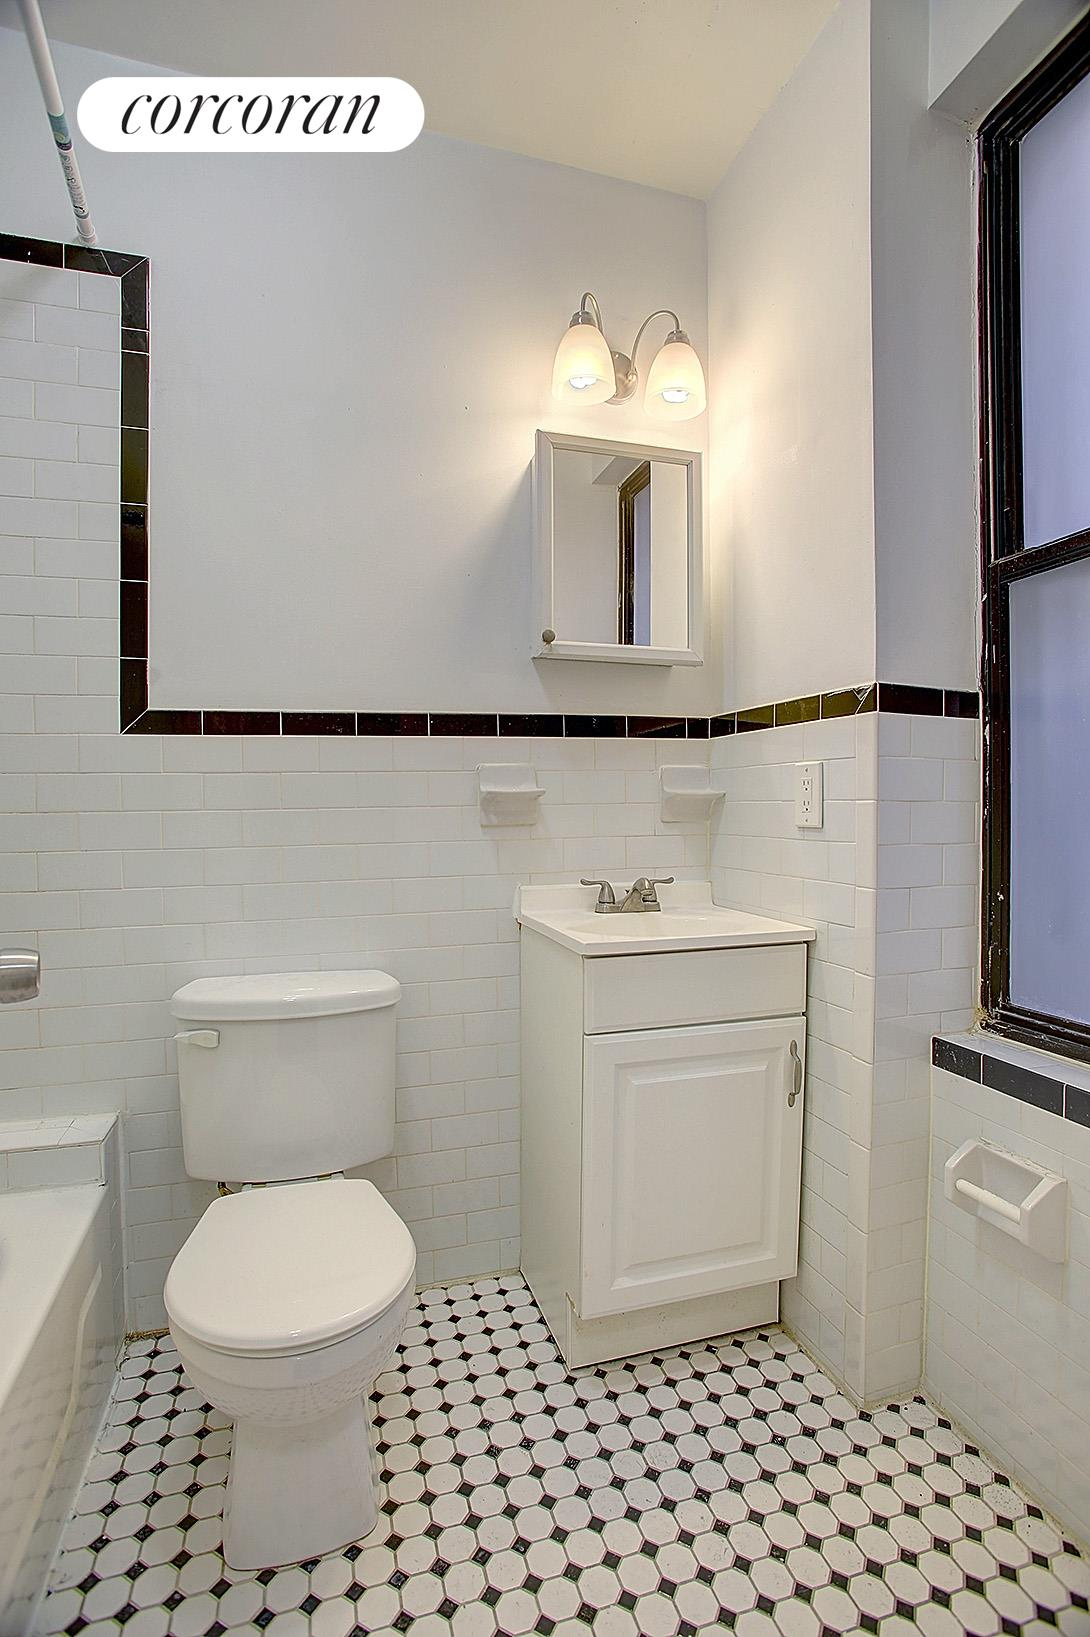 204 West 96th Street 4-B Upper West Side New York NY 10025